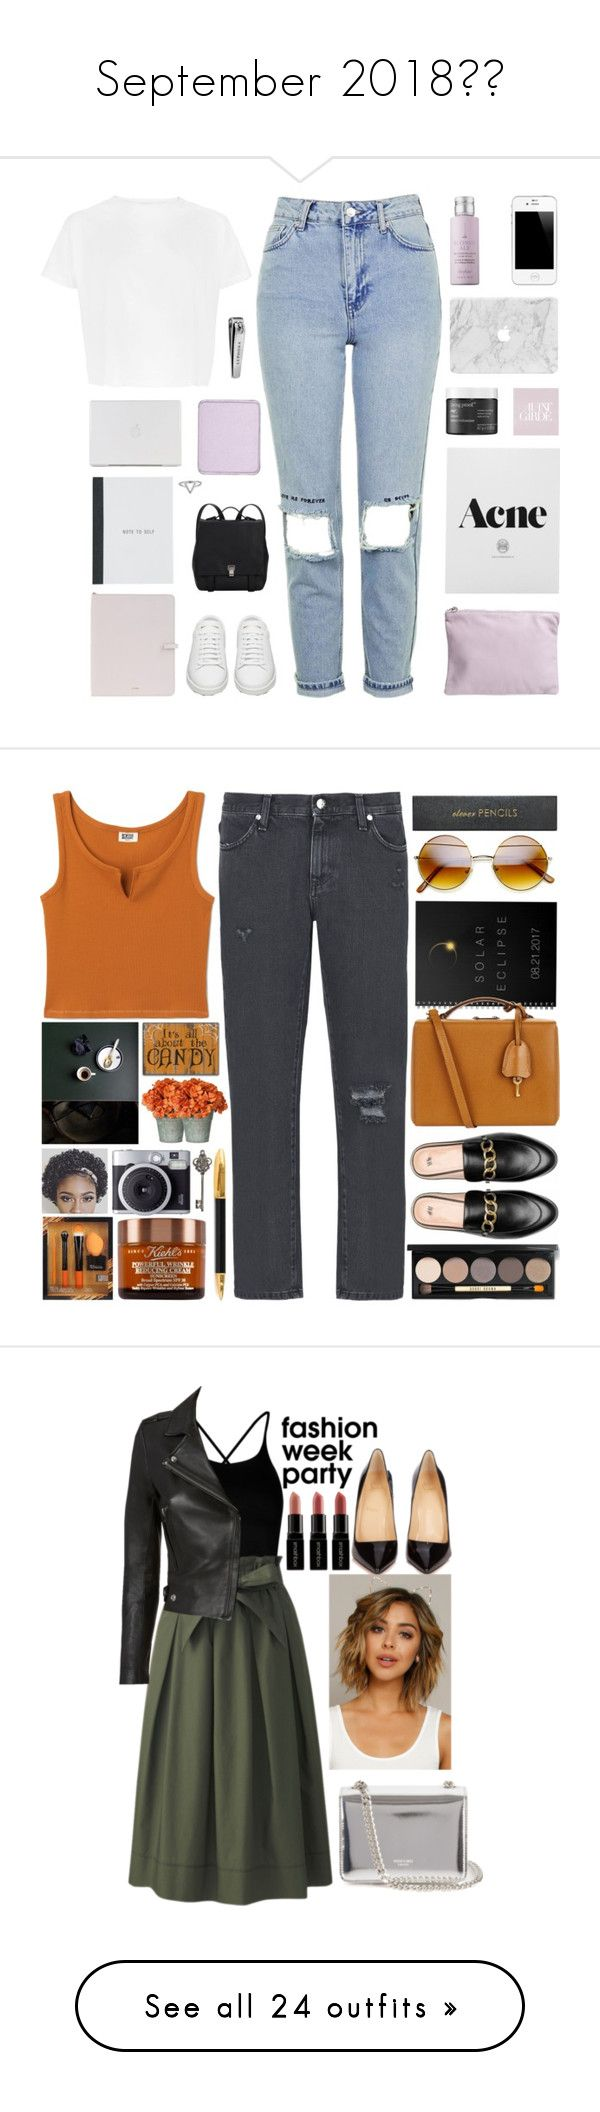 """""""September 2018❣️"""" by magscerasuolo ❤ liked on Polyvore featuring Jil Sander, ChloBo, Drybar, BAGGU, Topshop, shu uemura, Living Proof, Sephora Collection, Yves Saint Laurent and Proenza Schouler"""